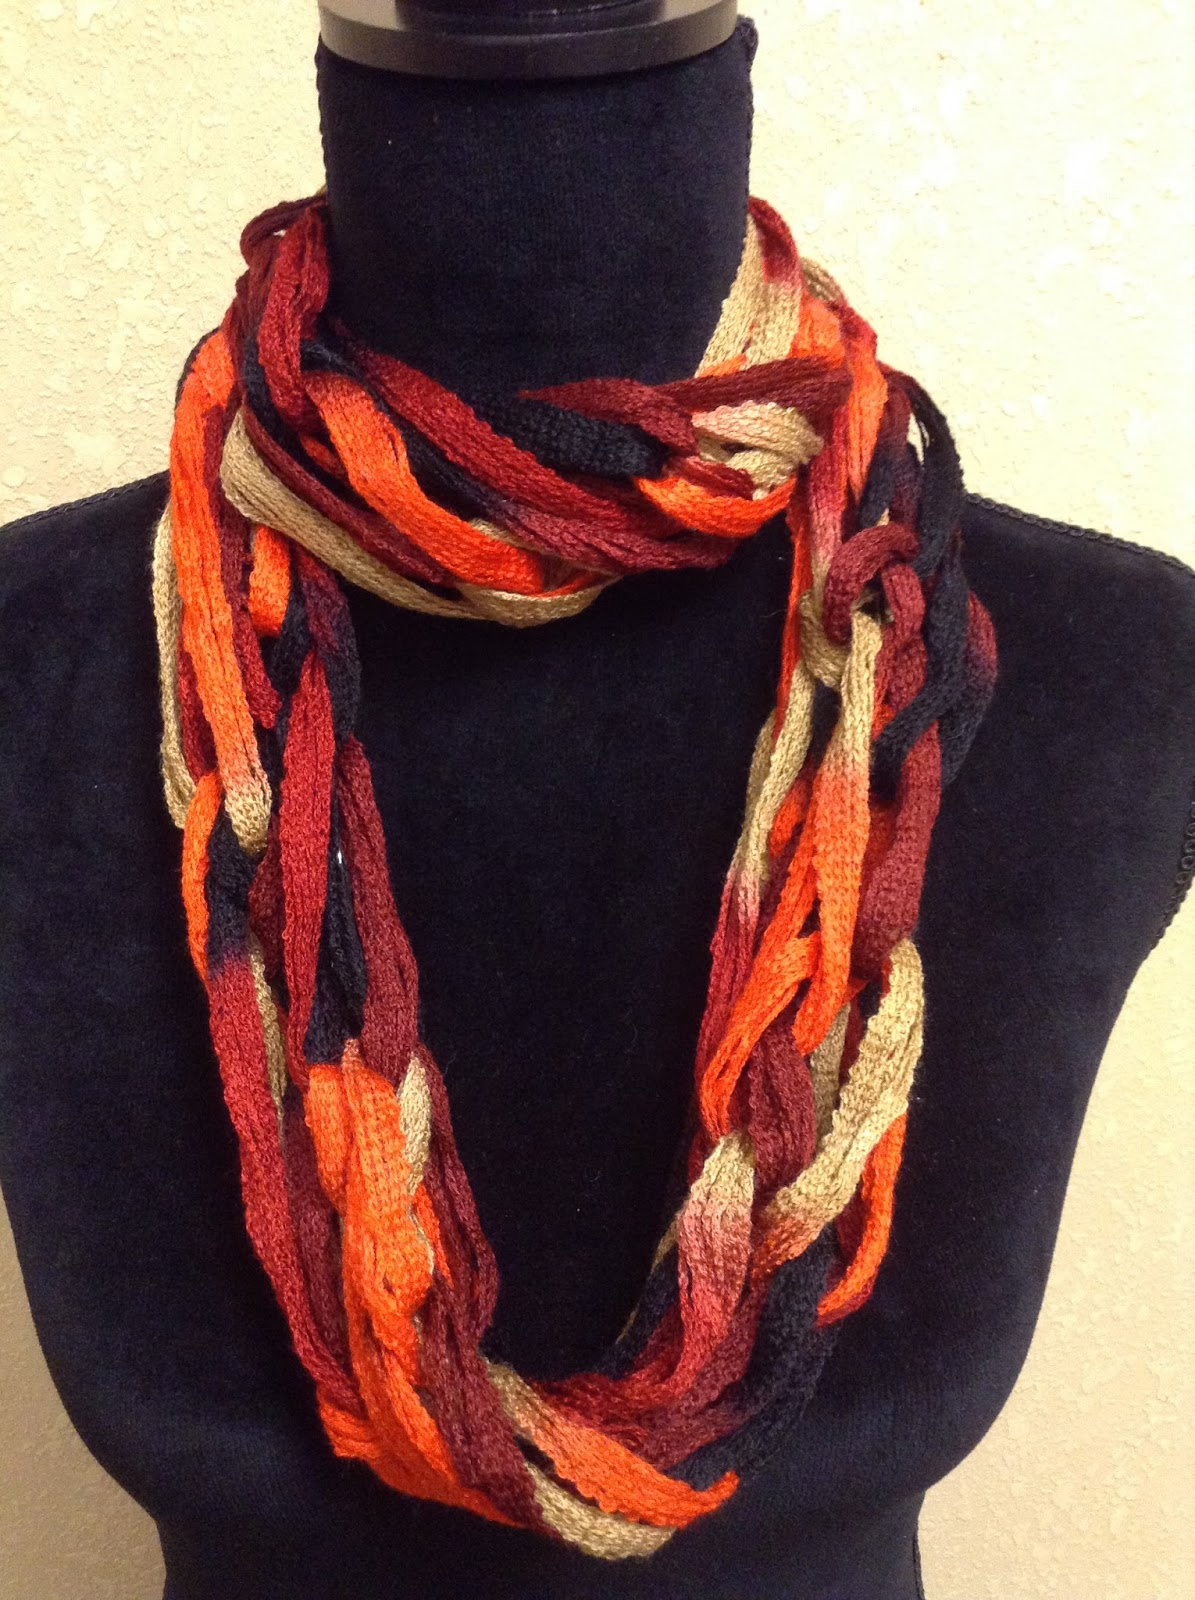 Knitting With Arms Scarf : Craft warehouse